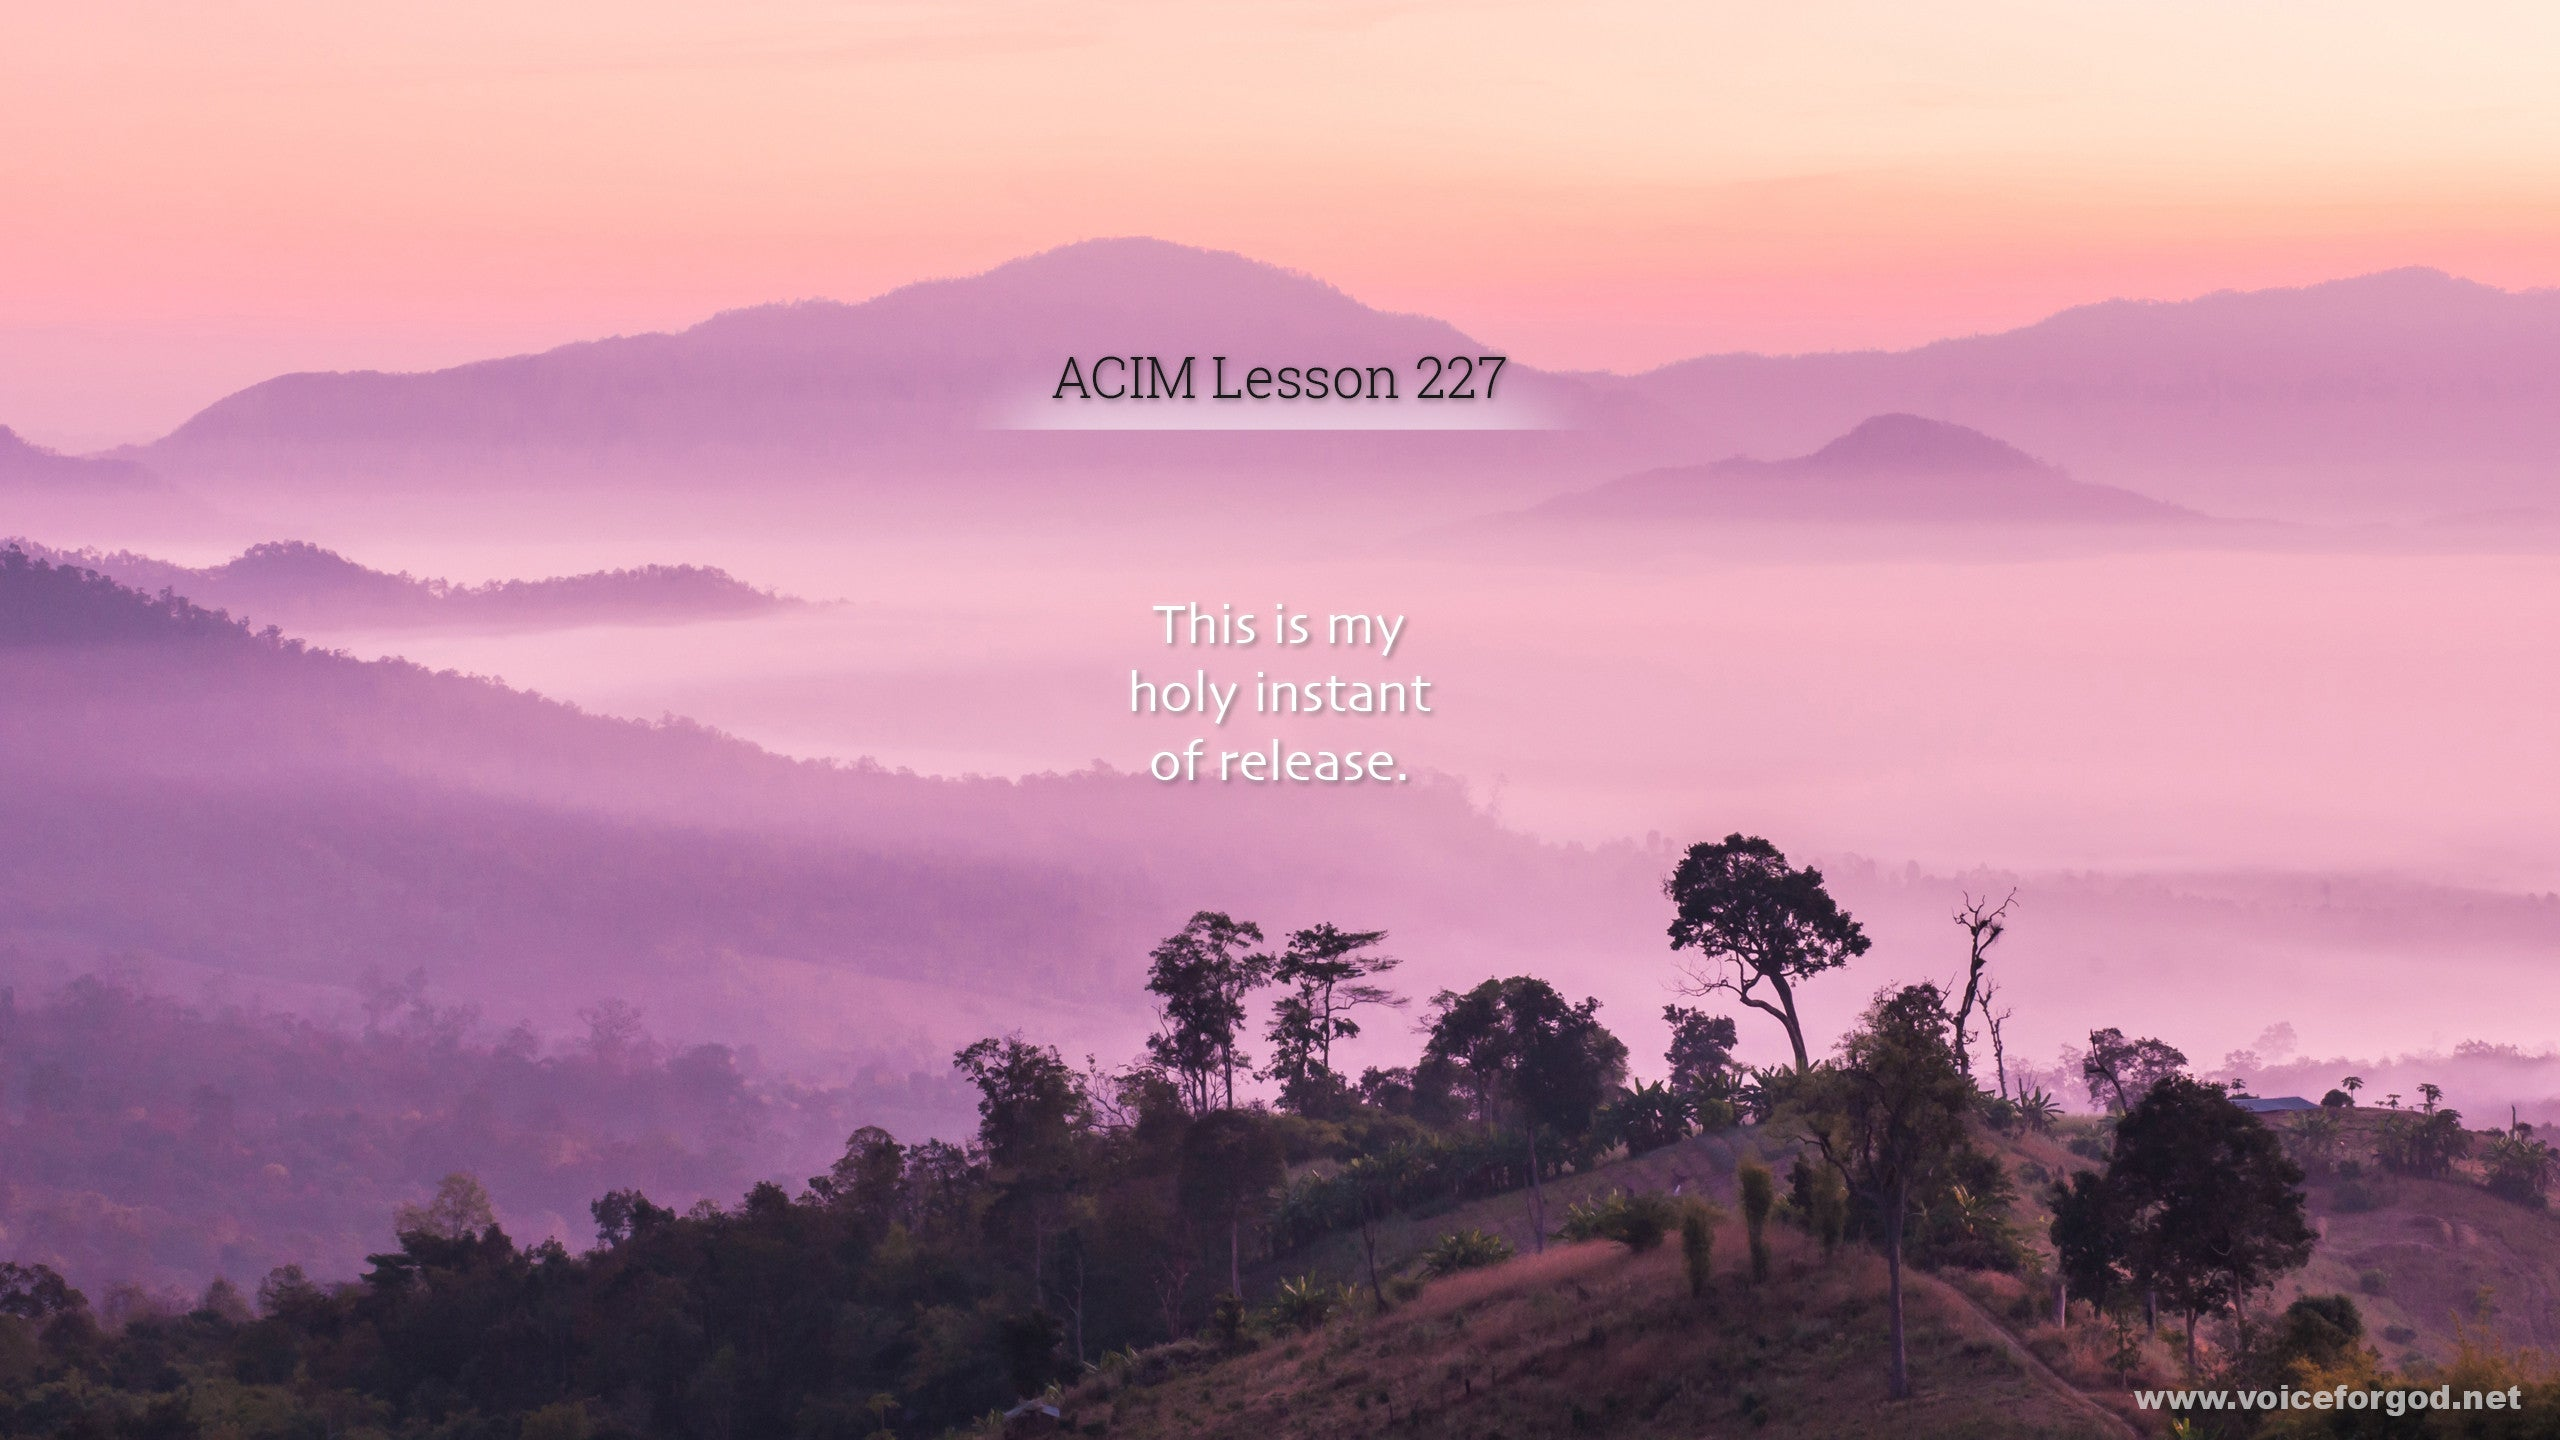 ACIM Lesson 227 - A Course in Miracles Workbook Lesson 227